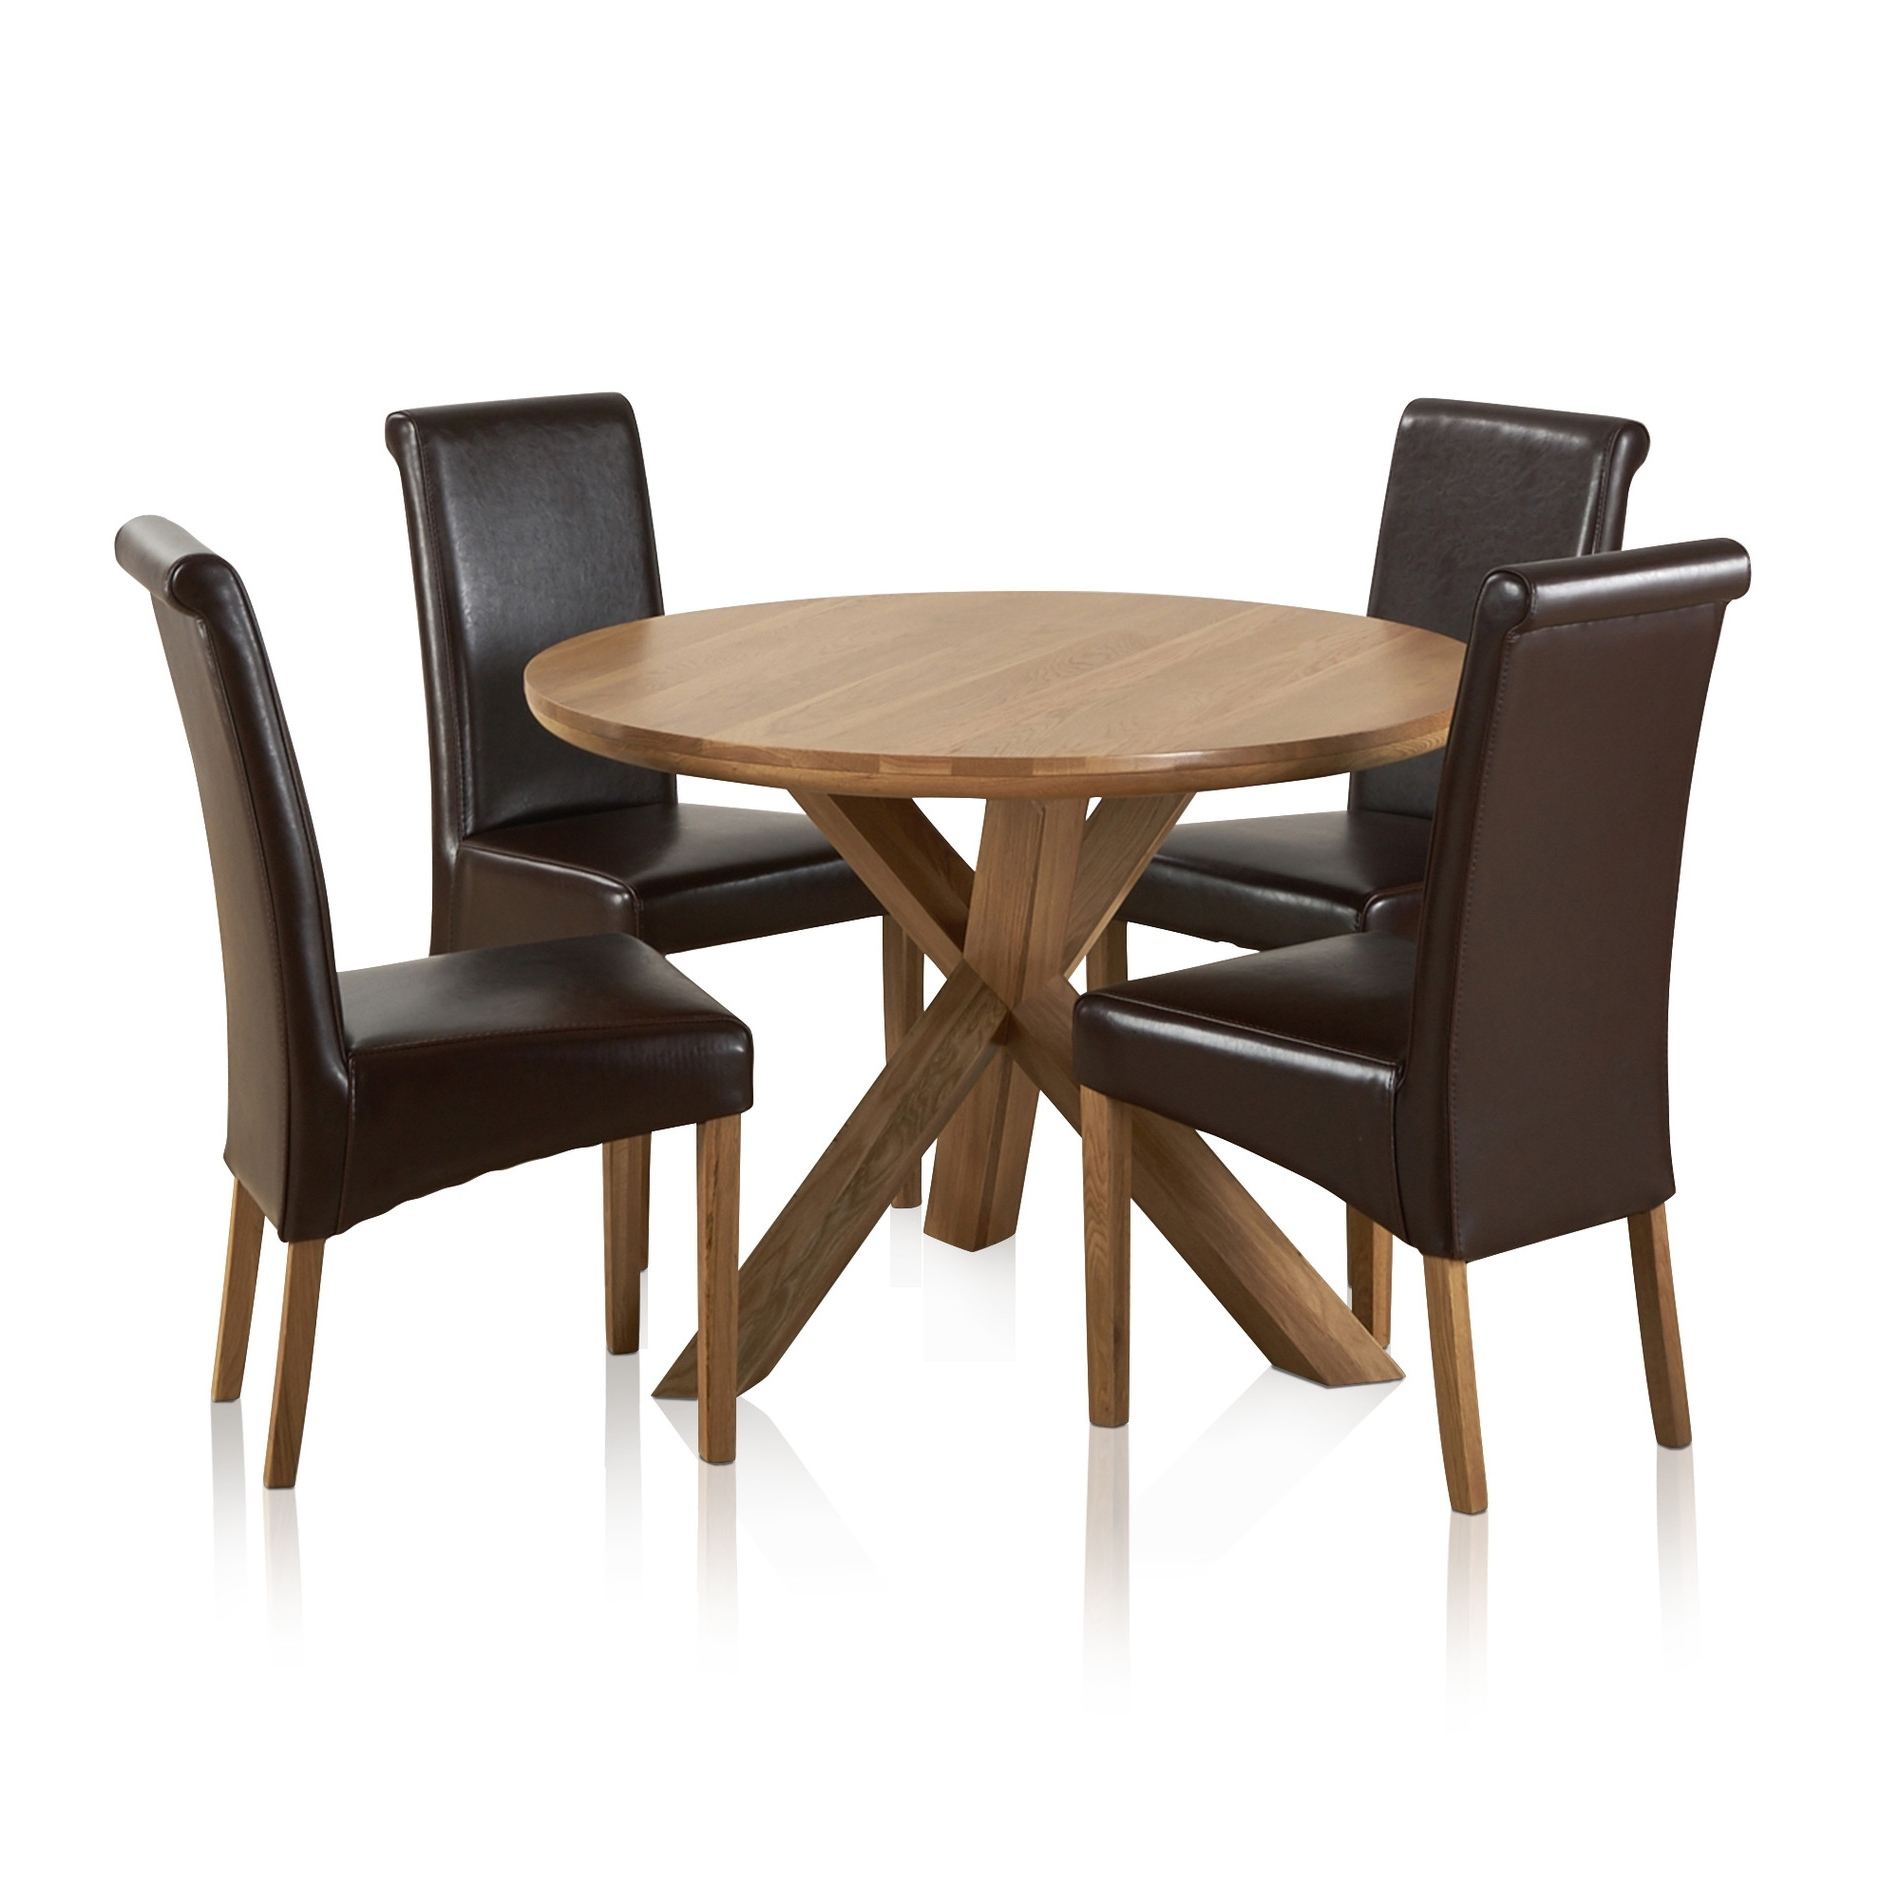 Oak Dining Tables And Leather Chairs In Latest Natural Real Oak Dining Set: Round Table + 4 Brown Leather Chairs (View 13 of 25)